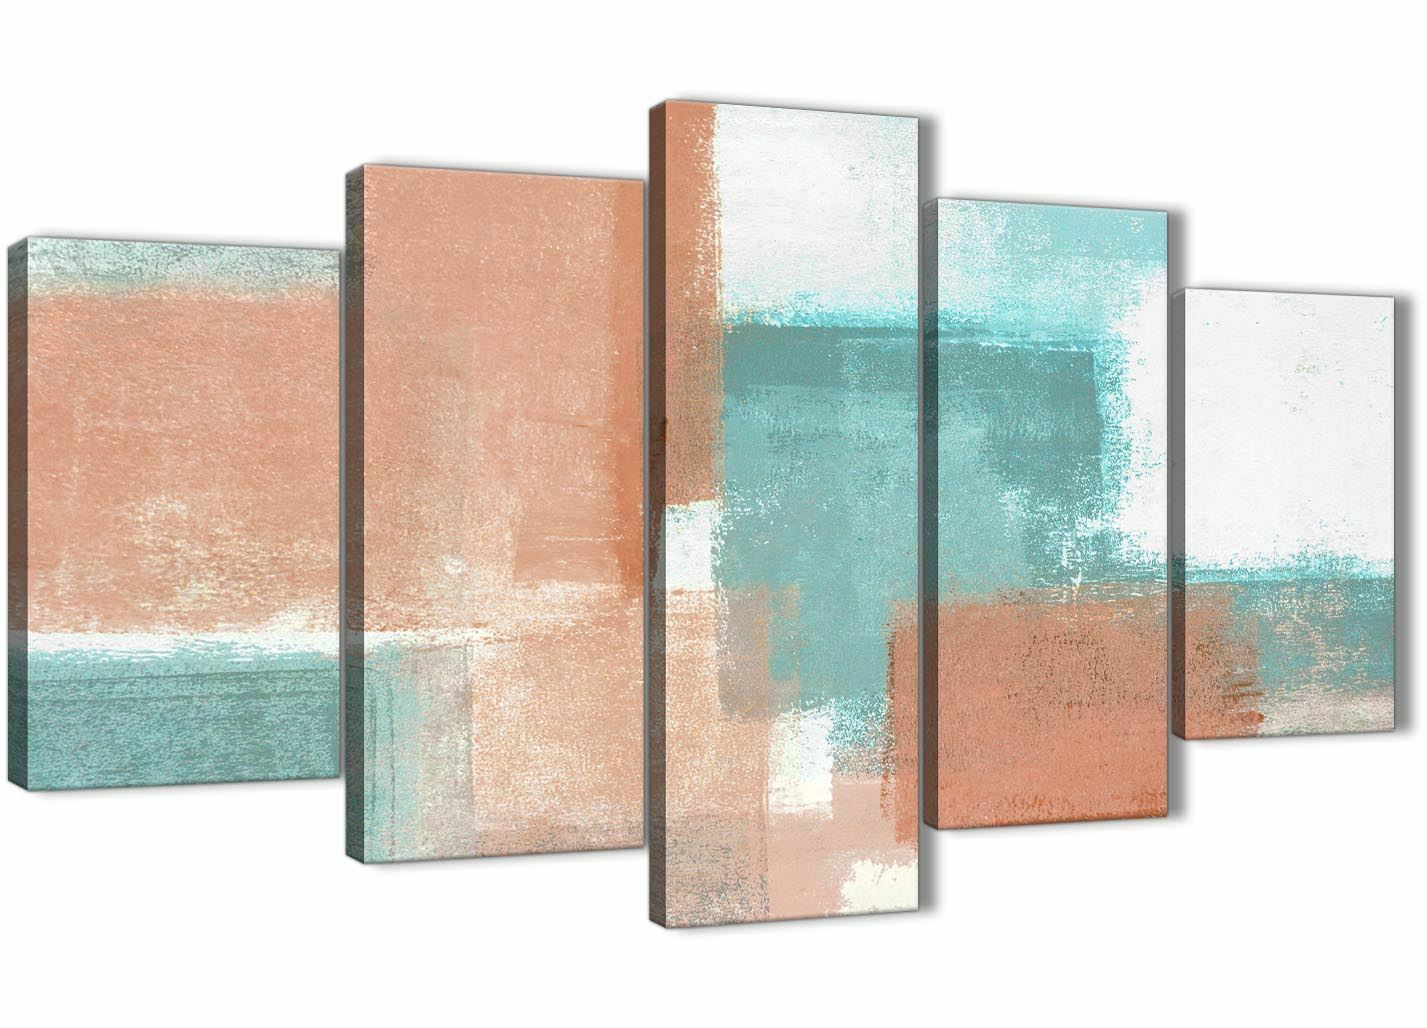 5 Piece Coral Turquoise Abstract Office Canvas Decorations - 5366 - 160cm